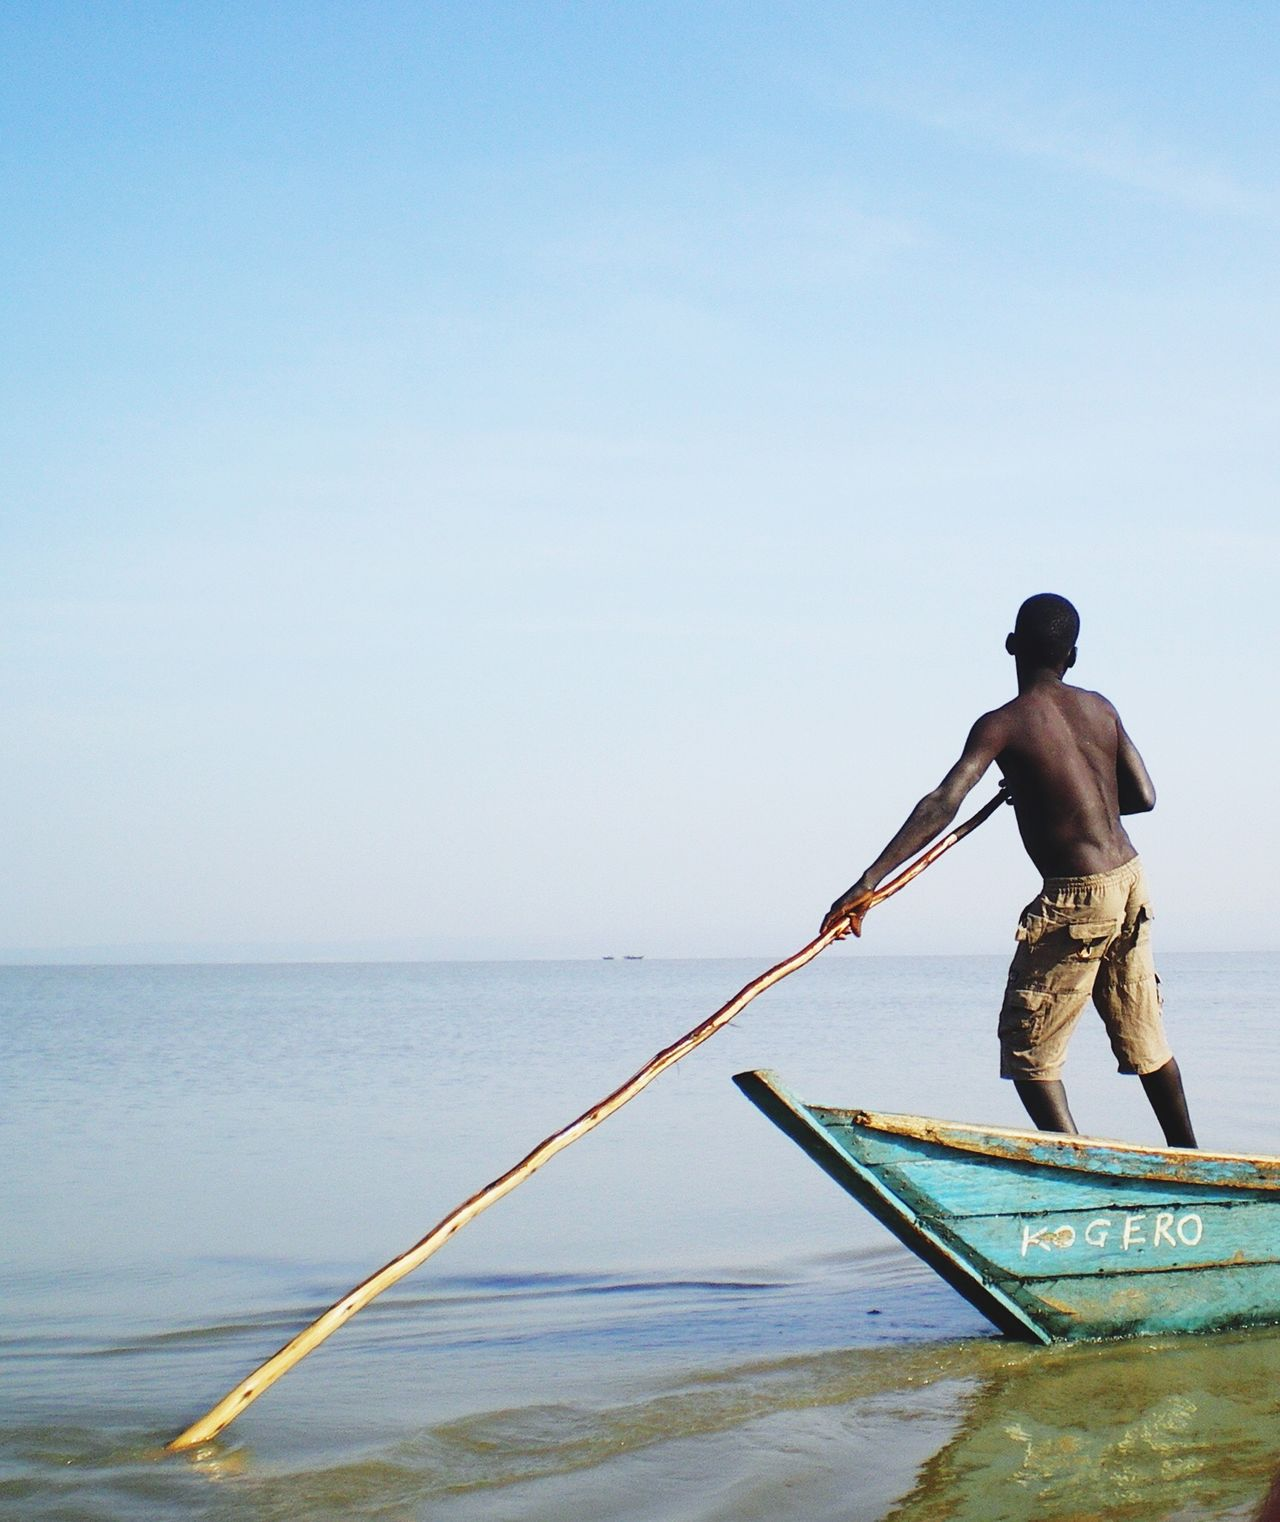 Real People Sea One Person Lifestyles Full Length Water Fisherman Outdoors Holding Men Clear Sky Oar Nautical Vessel Horizon Over Water Day Sky Occupation Nature Beauty In Nature Working Kenya